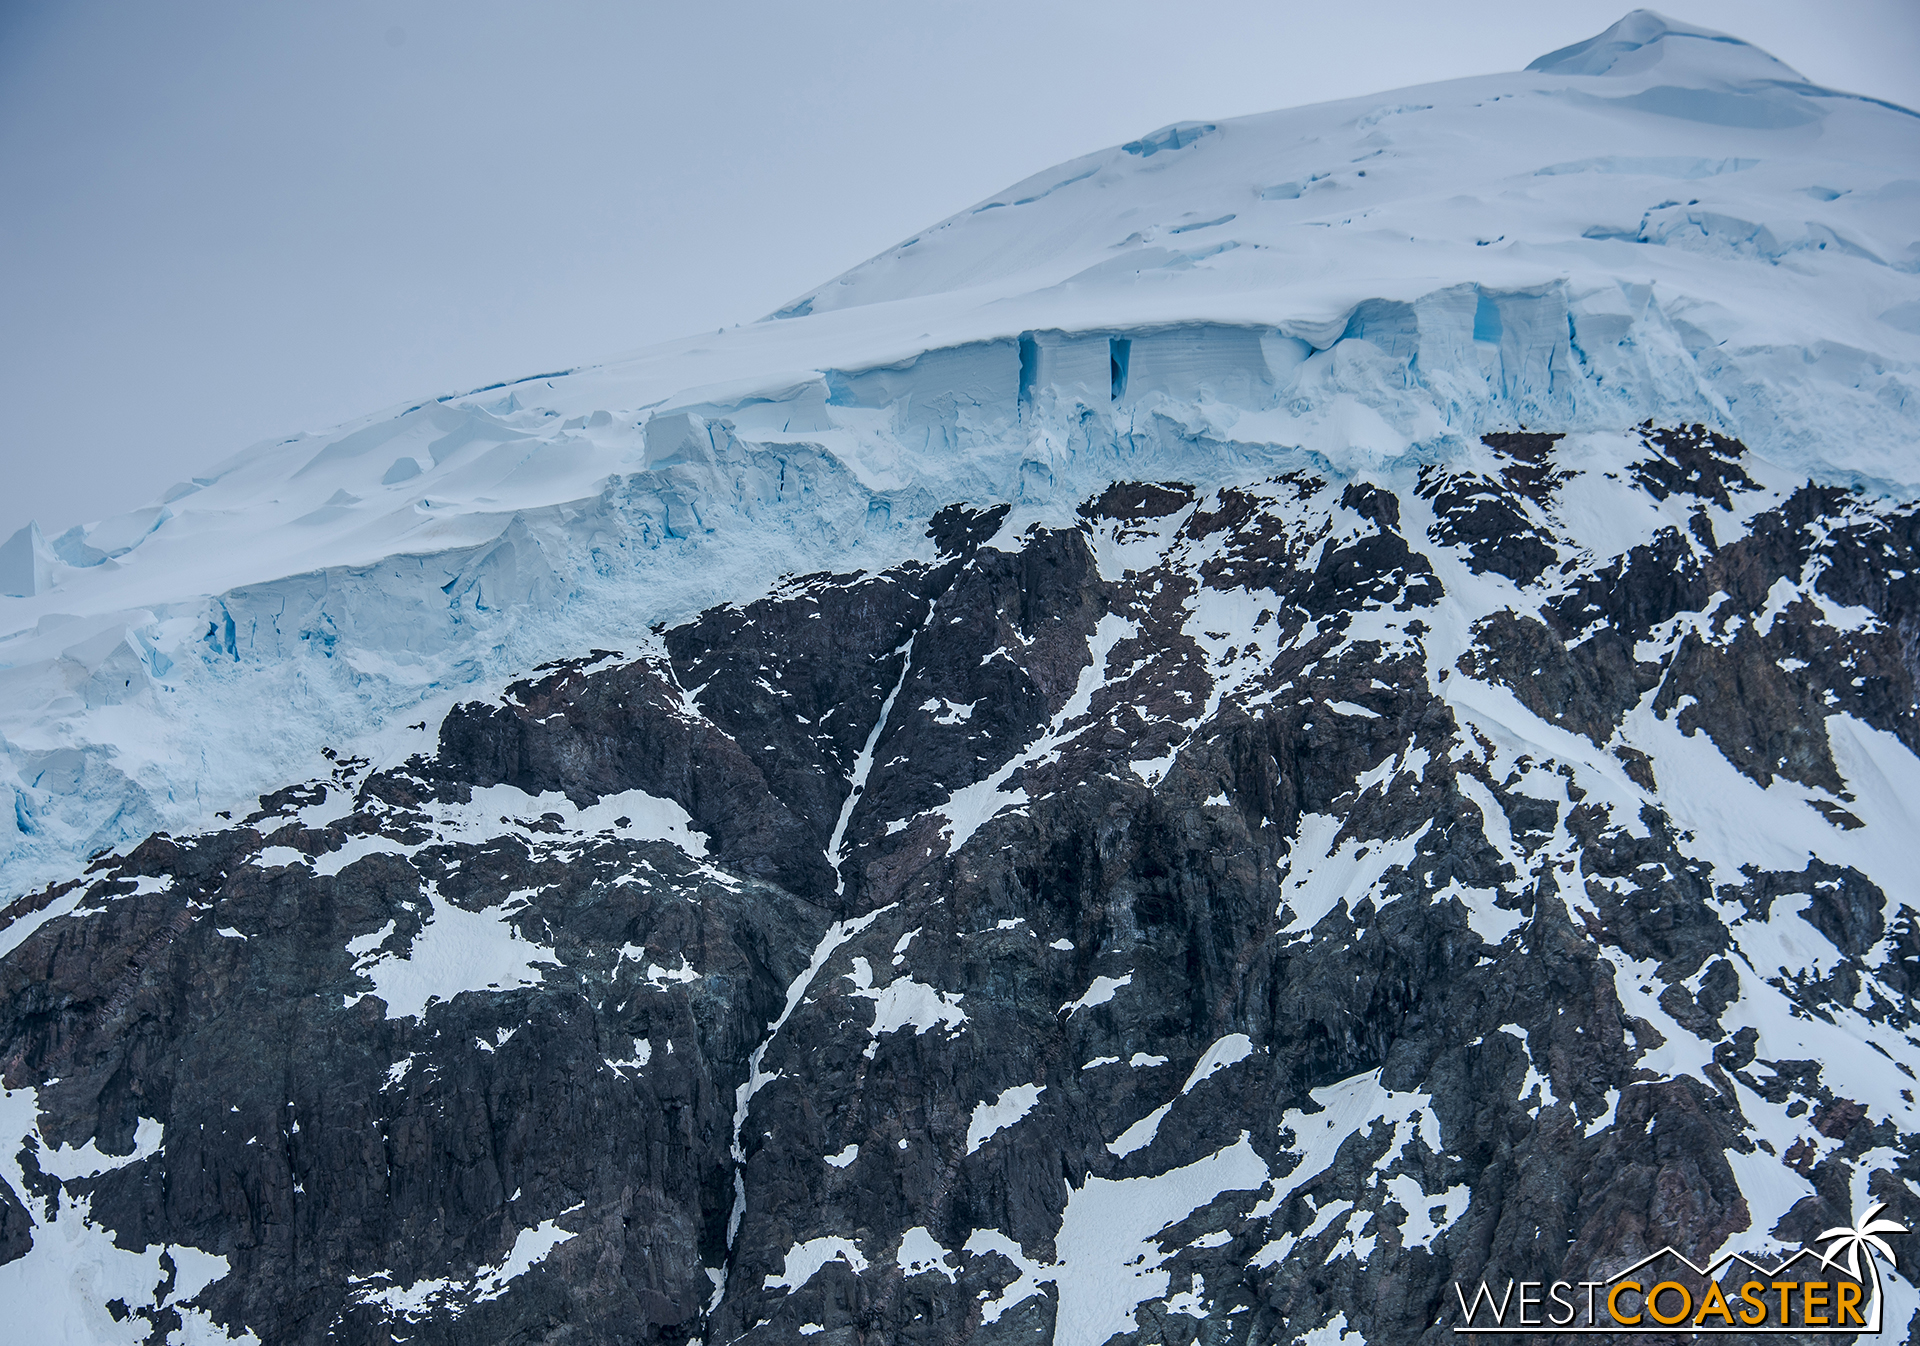 A snowy peak, heavily packed in a deep layer of ice, dramatically textured.